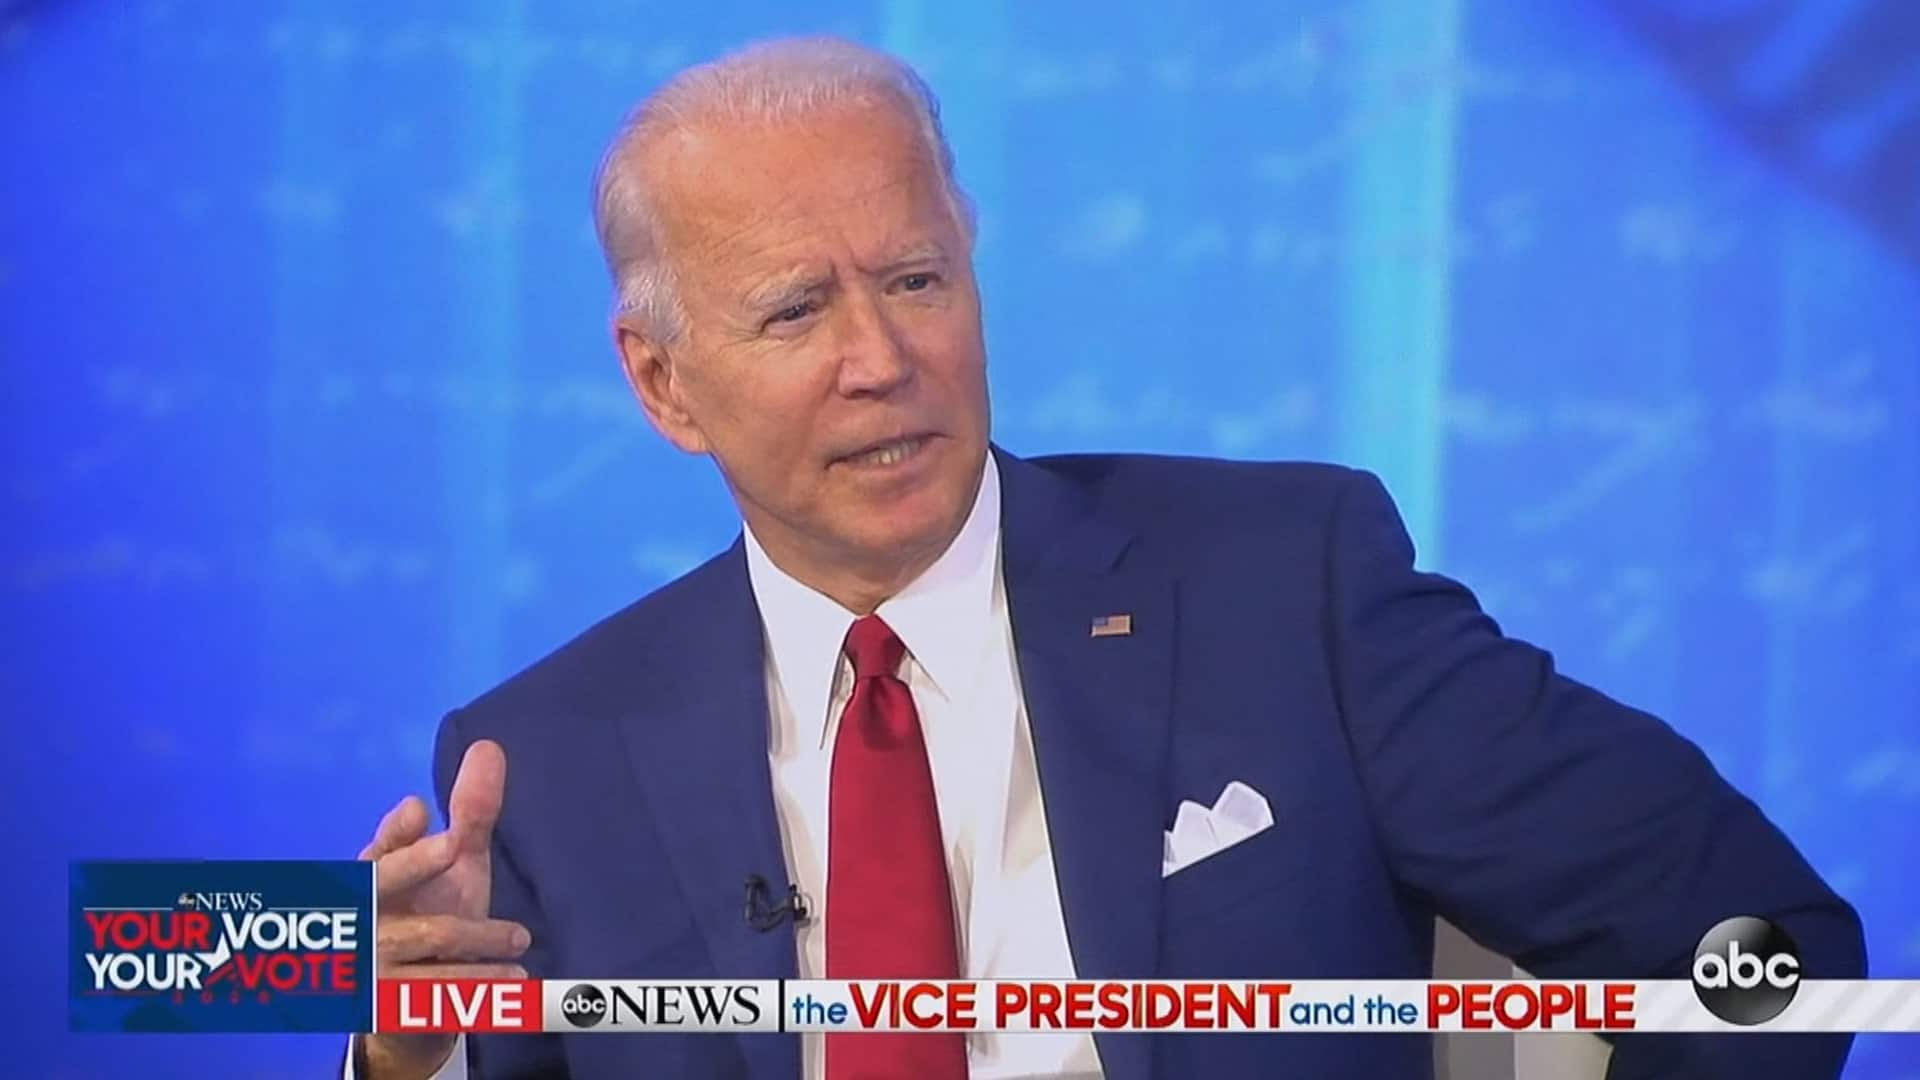 Joe Biden tops Donald Trump in town hall viewers, ratings show